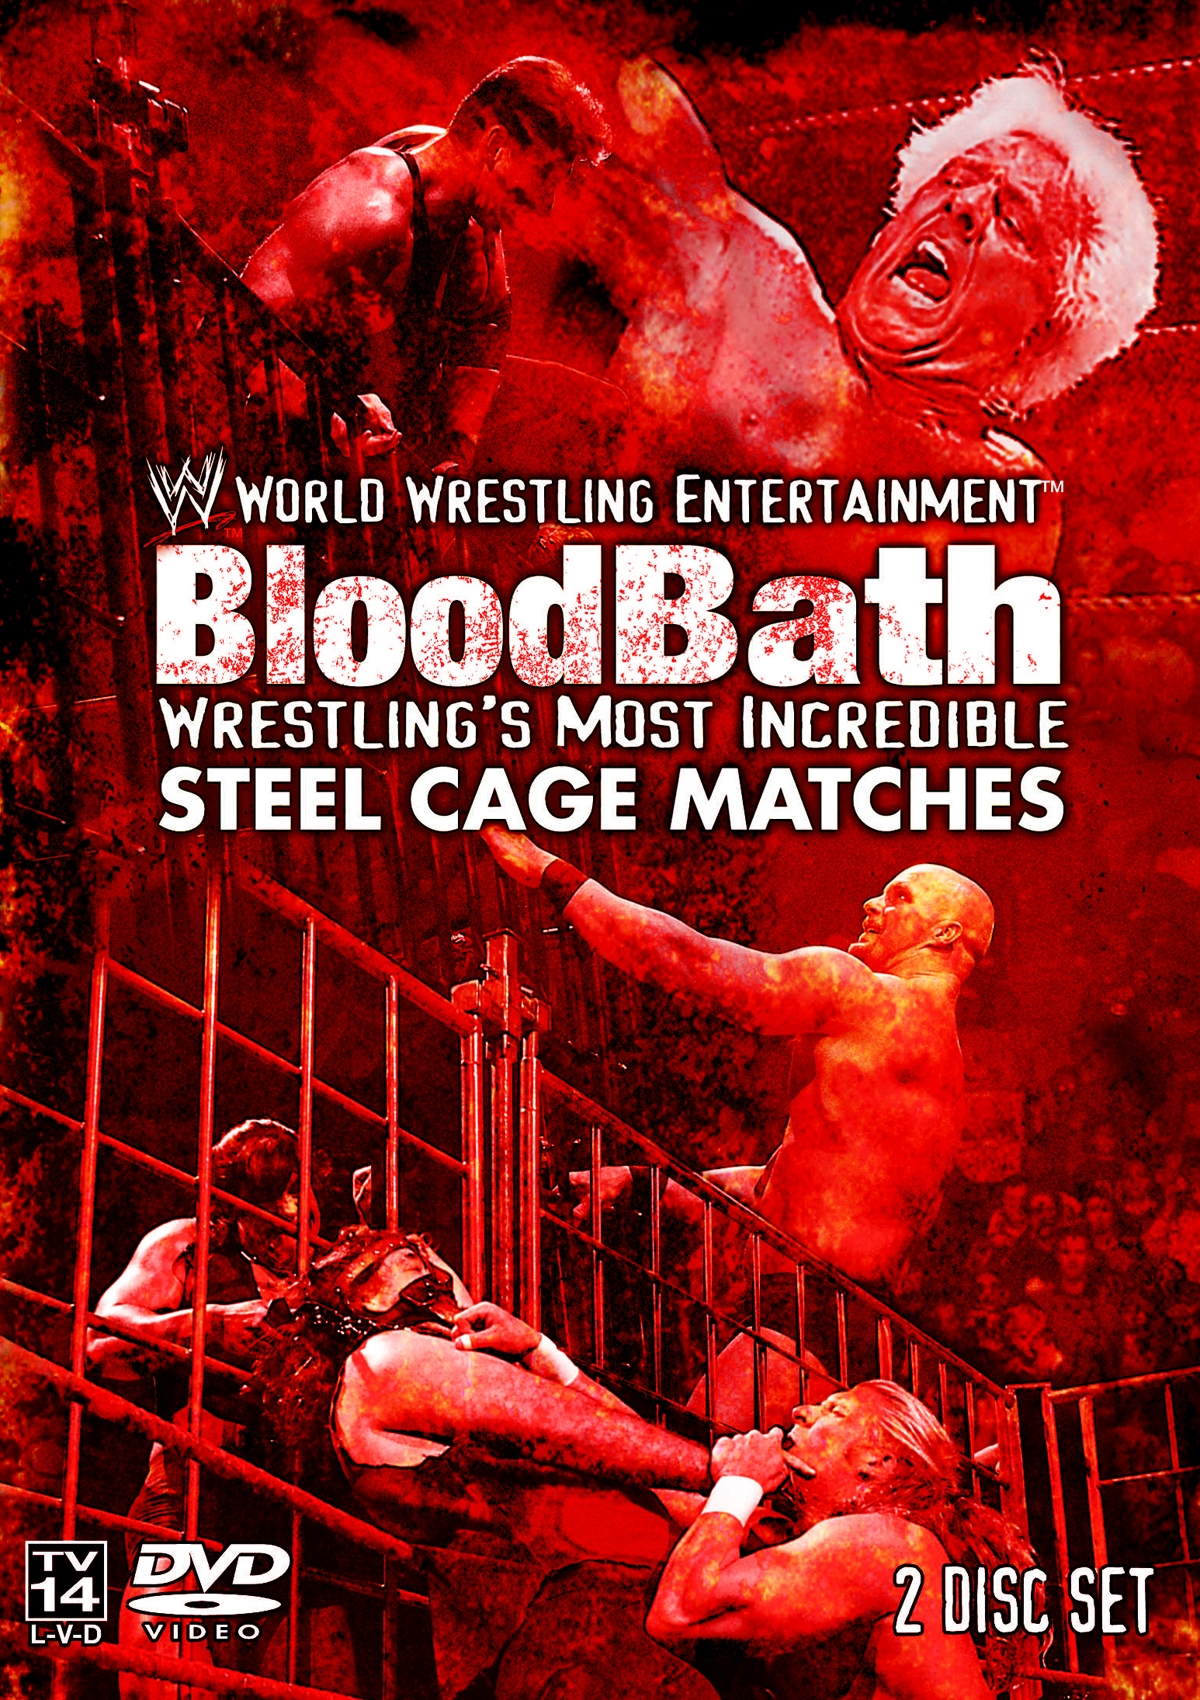 bloodbath wrestlings most incredible steel cage matches